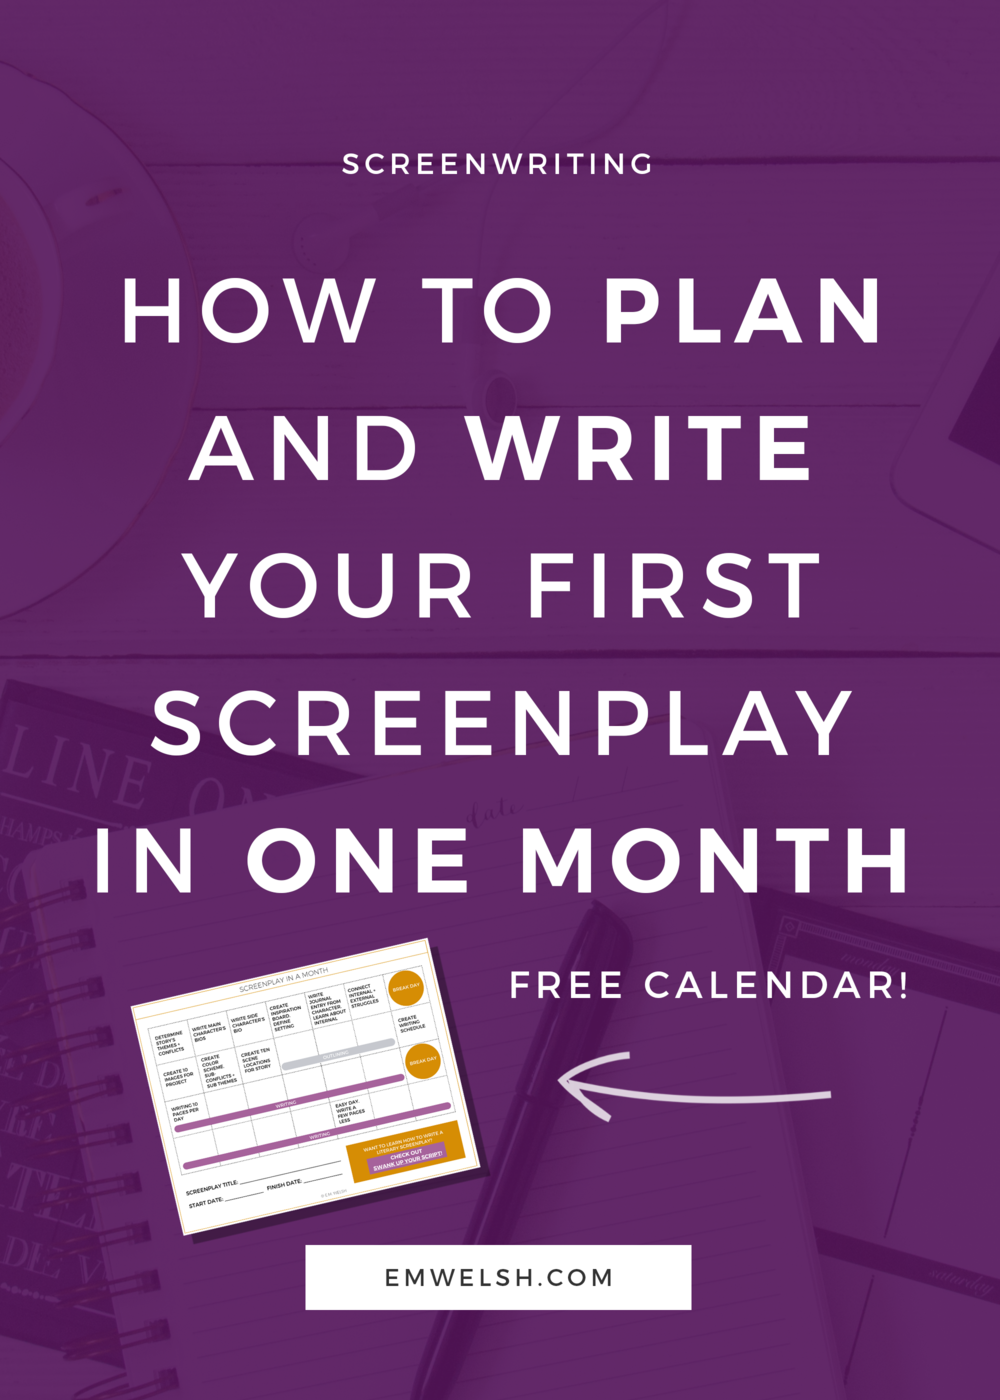 how to plan and write your first screenplay in one month e m welsh